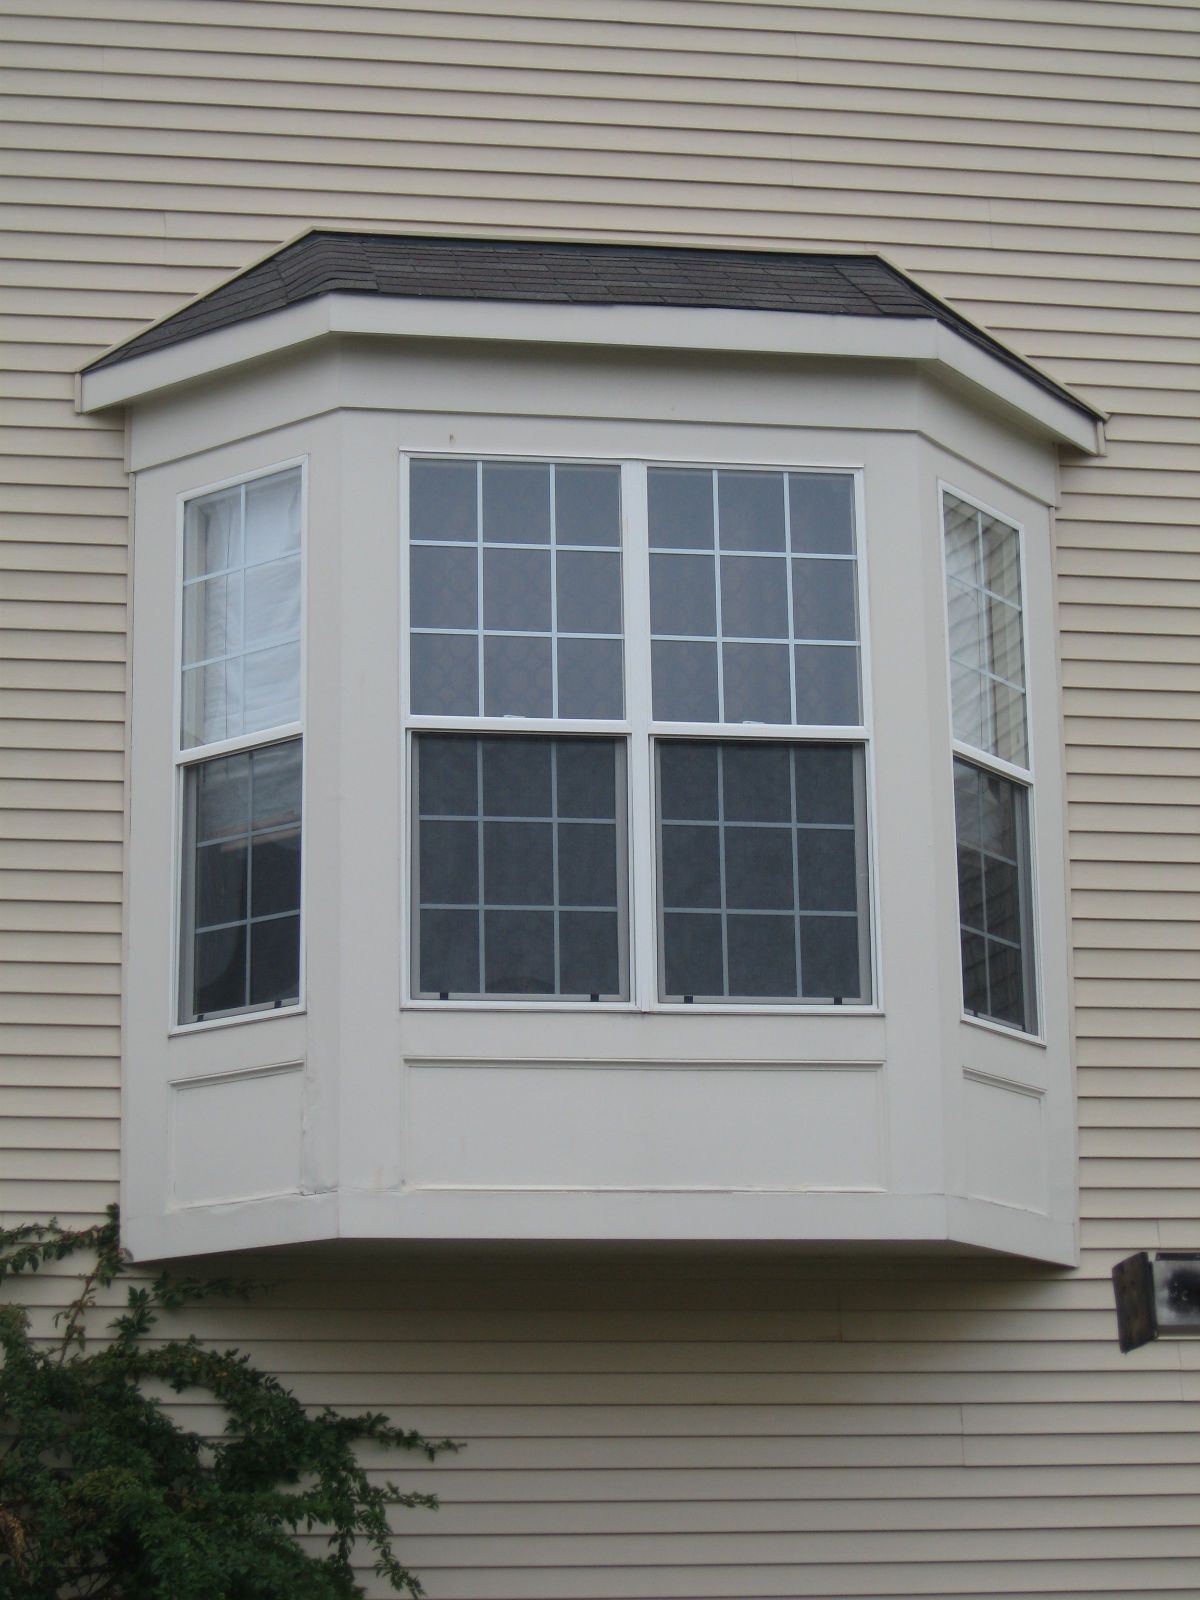 Window Capping Bay Window Capping Wood Replace Home Exteriors Pinterest Window Woods